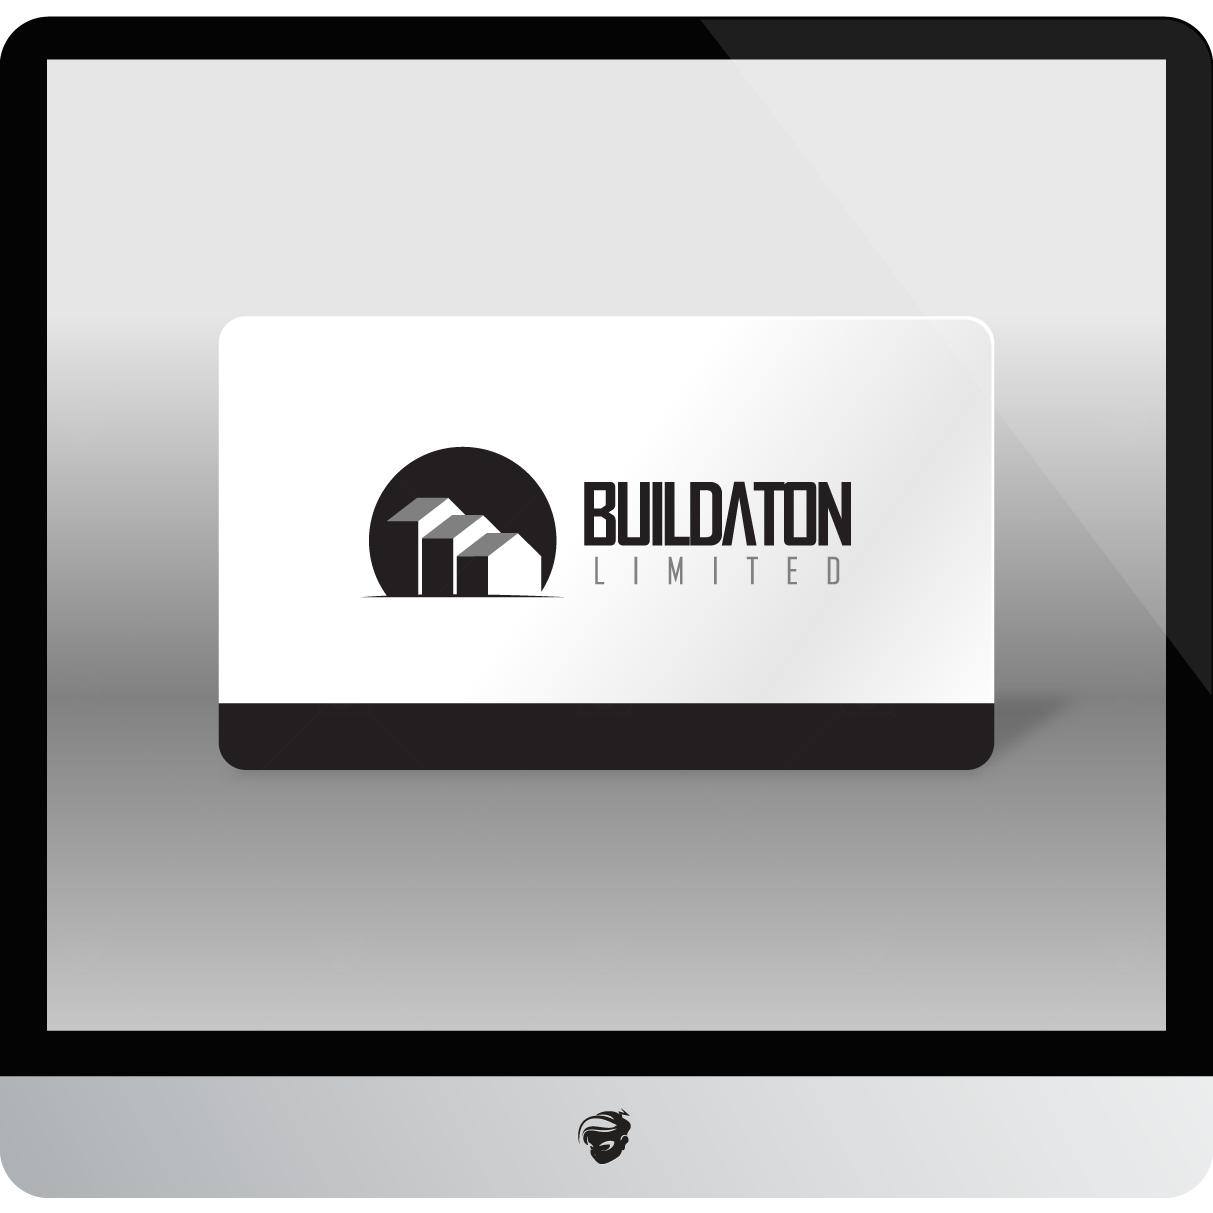 Logo Design by zesthar - Entry No. 88 in the Logo Design Contest Artistic Logo Design for Buildaton Limited.